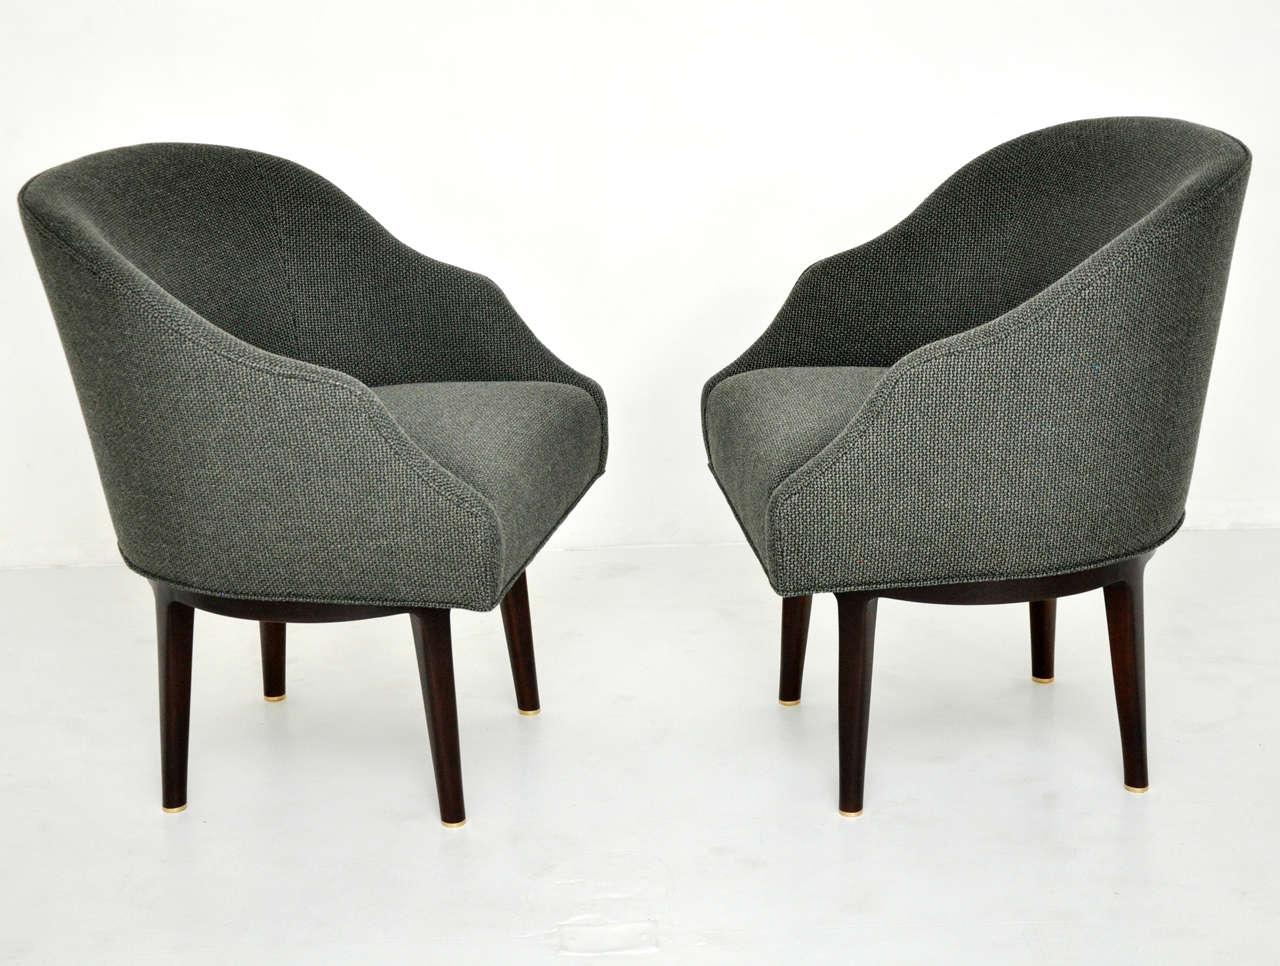 Pair of swivel lounge chairs by Edward Wormley for Dunbar. Fully restored. Dark espresso finish frames with new woven charcoal upholstery. Chairs have a swivel and return mechanism.